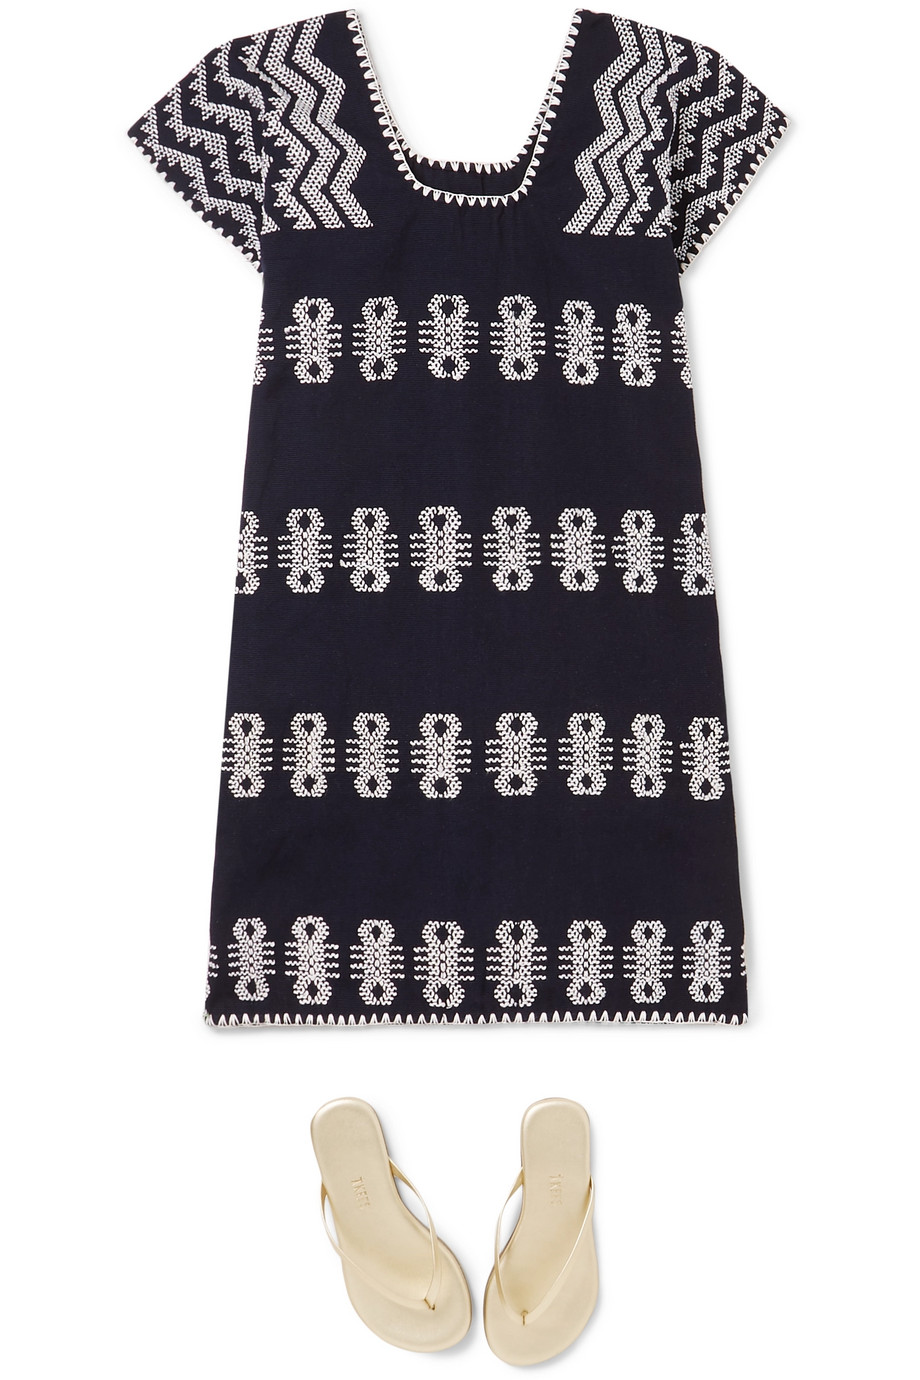 Pippa Holt Kids Embroidered cotton huipil